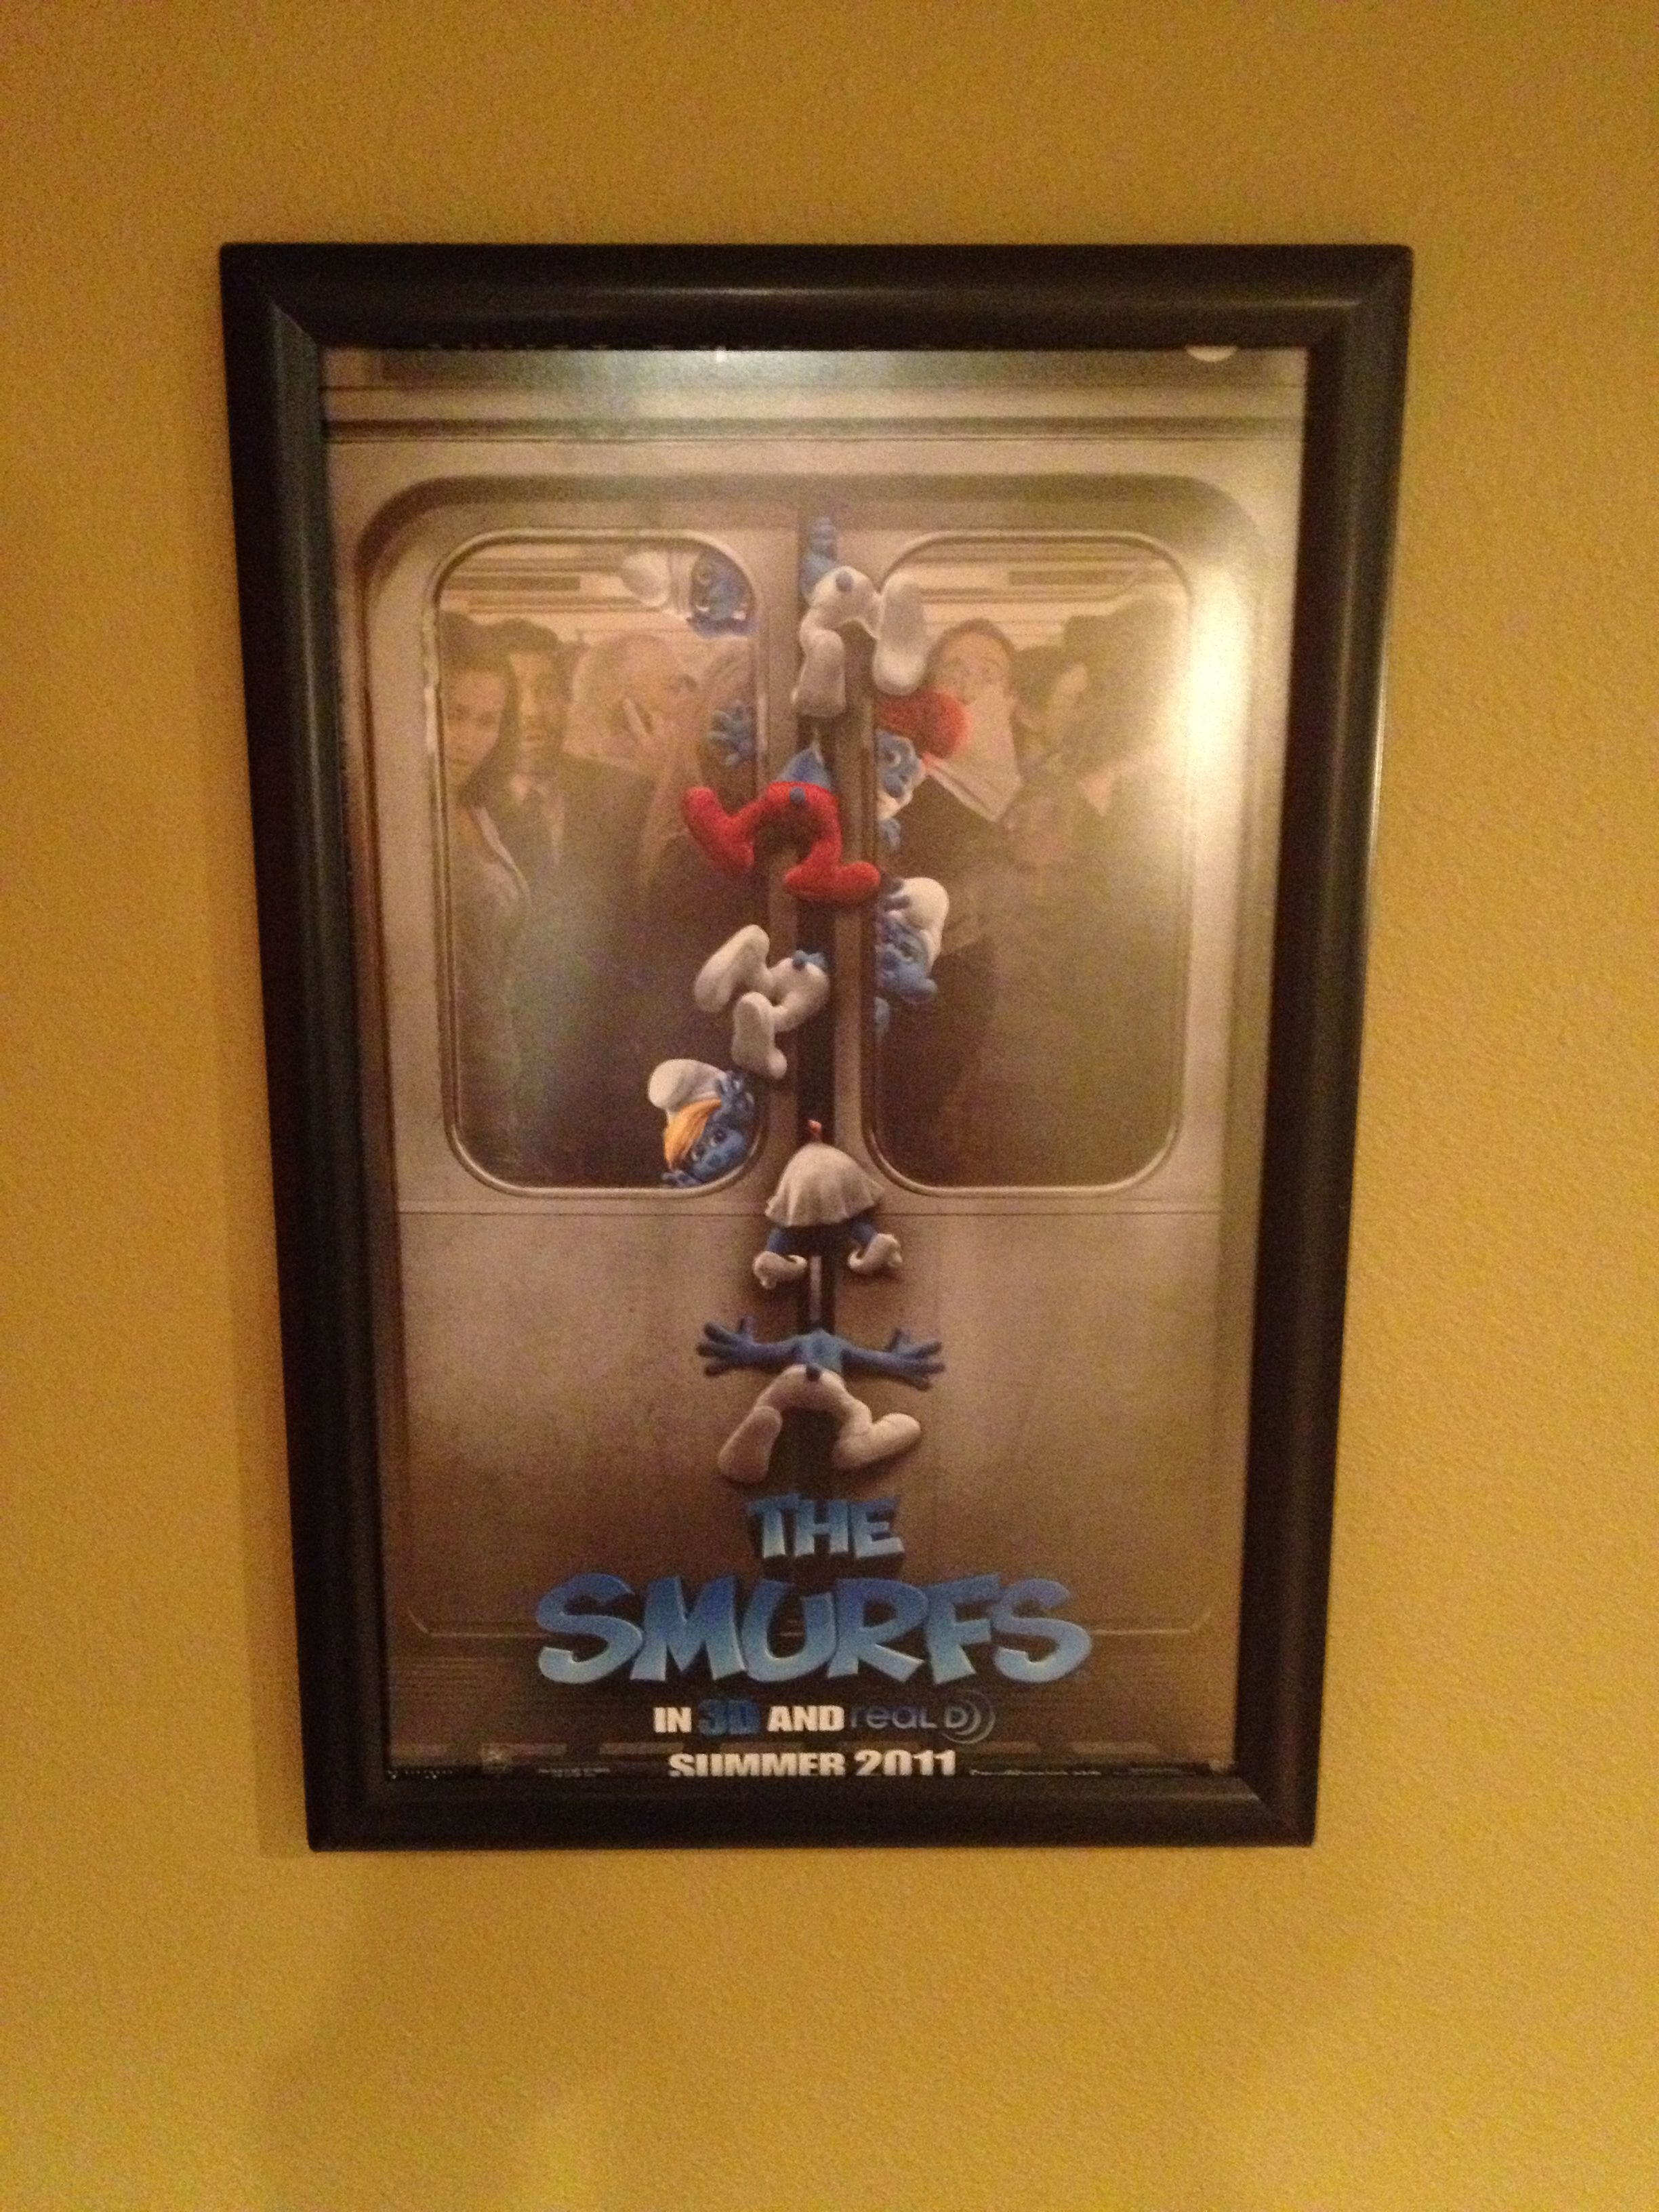 The Smurfs Movie Poster In Its 11x17 Black Aluminum Anti Glare Snap